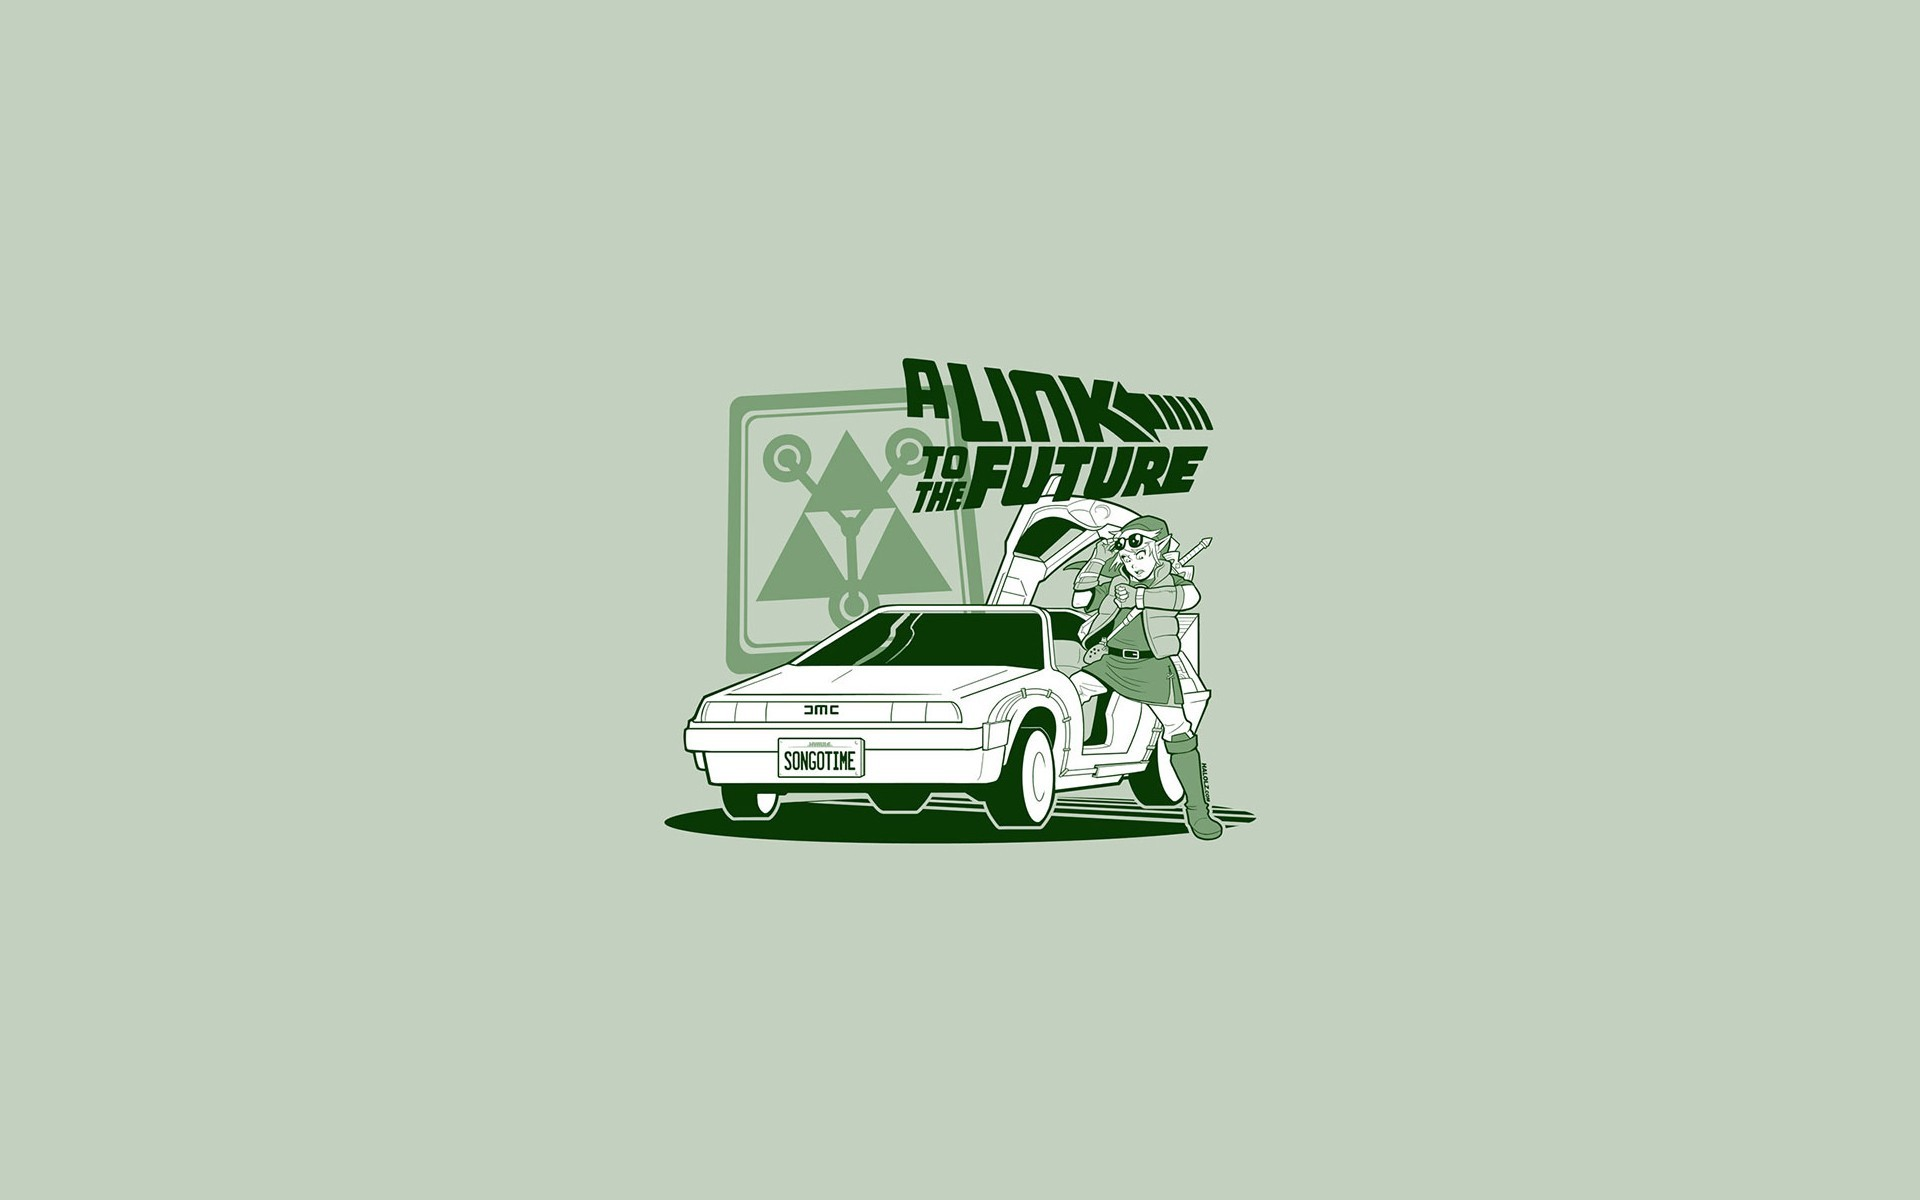 1920x1200 Back To The Future Cars Cartoons Comics DeLorean DMC-12 Doc Brown Funny  Link Marty McFly Spoof Legend Of Zelda